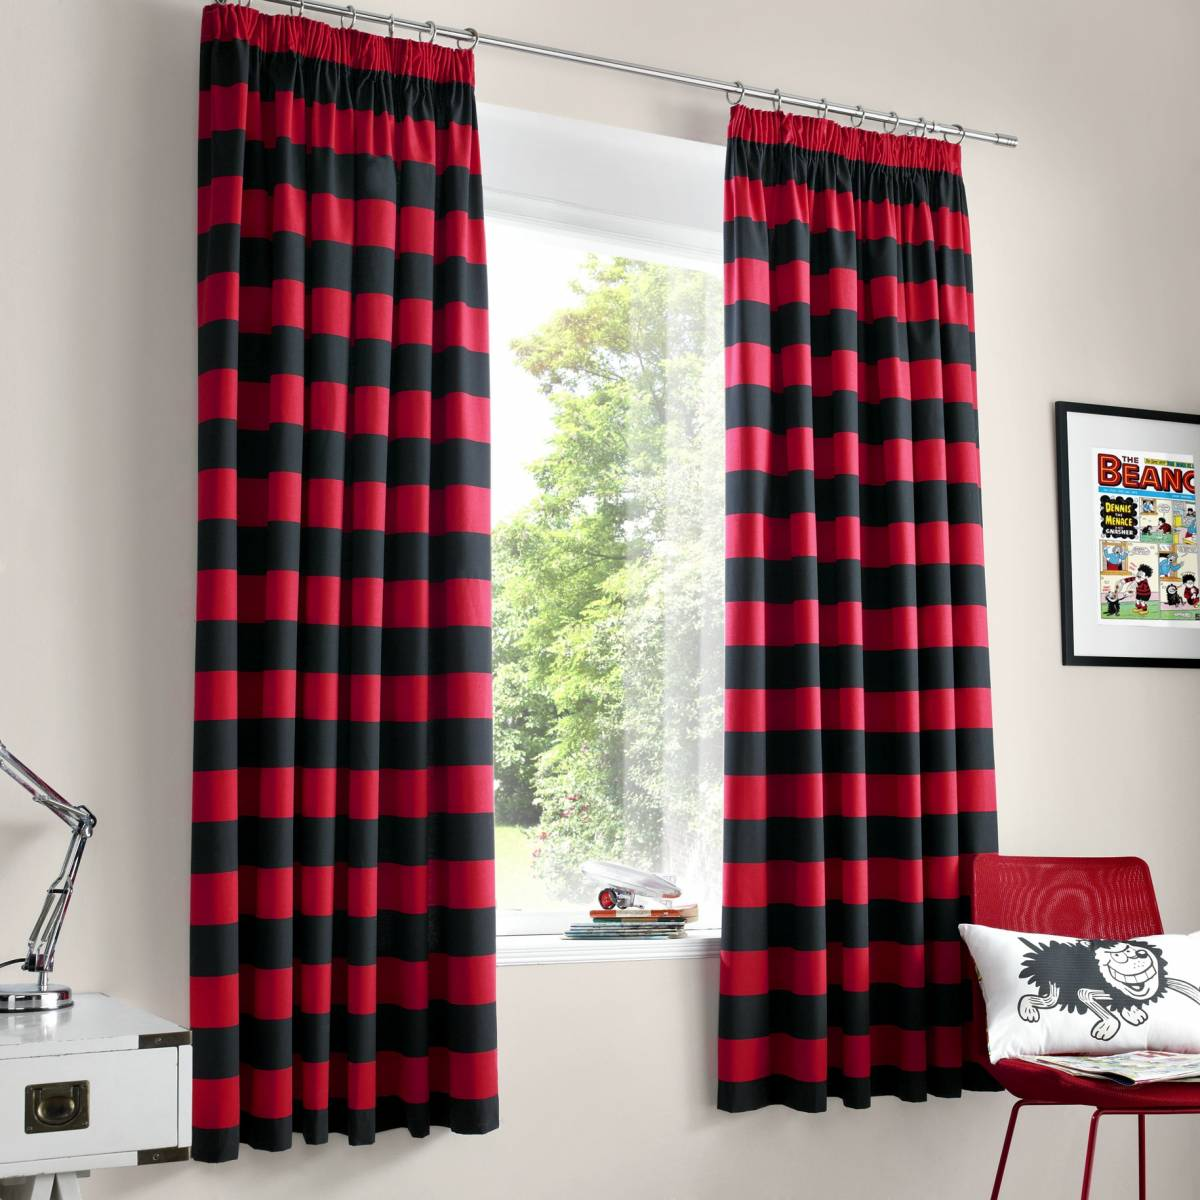 1361300748-45781600 20+ Hottest Curtain Designs for 2018